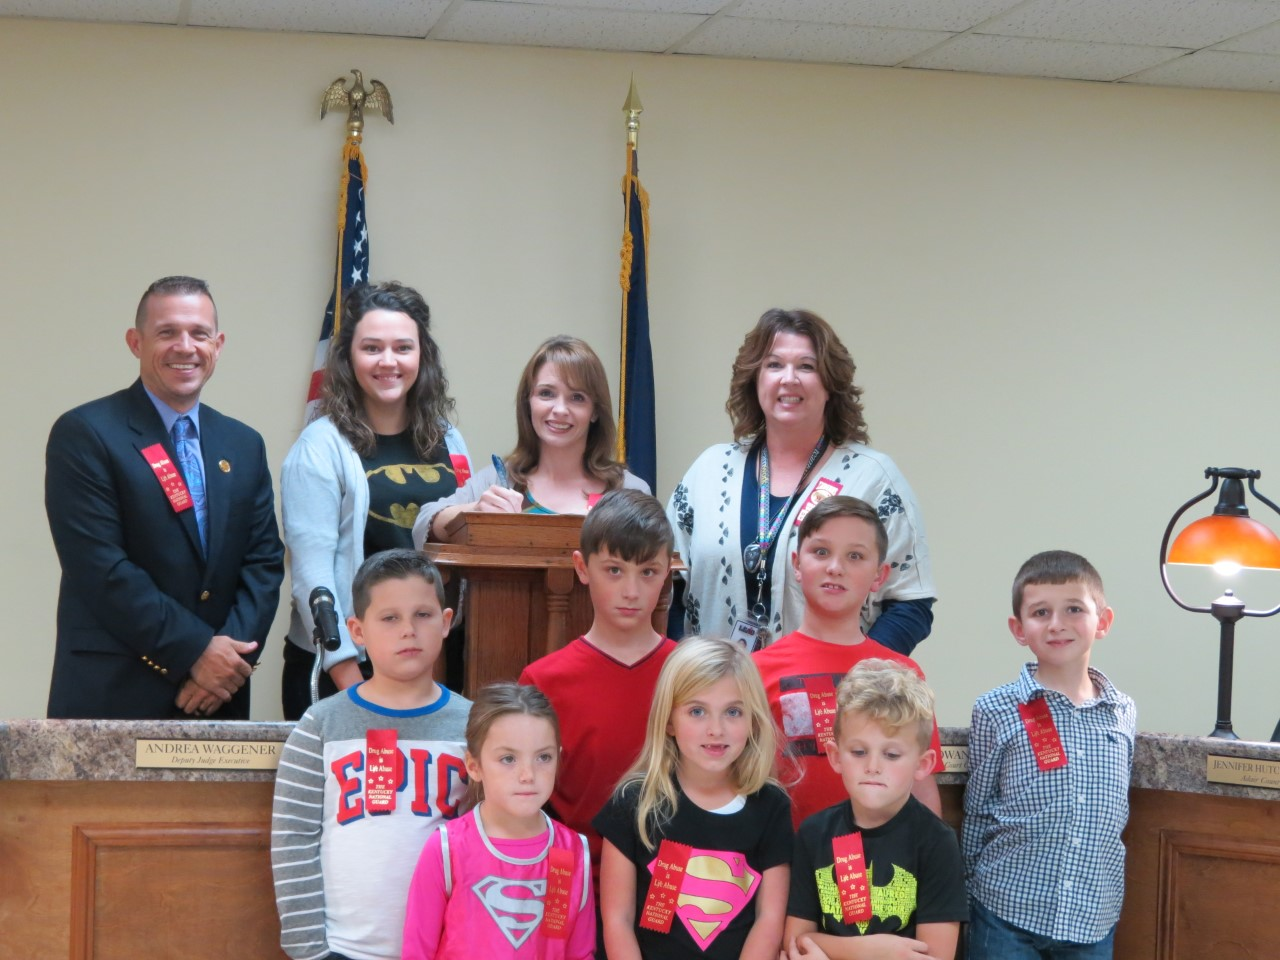 Adair County School staff, Robbie Harmon, Sarah Dean and Debbie Cowan join Deputy Judge Executive Andrea Waggener and students Jay Harmon, Colt King, Cooper King, Tyler Grant, Molly Froedge, Virginia Willis and George Willis in signing a proclamation declaring the week of October 23rd - 27th as Red Ribbon Week for Adair County.